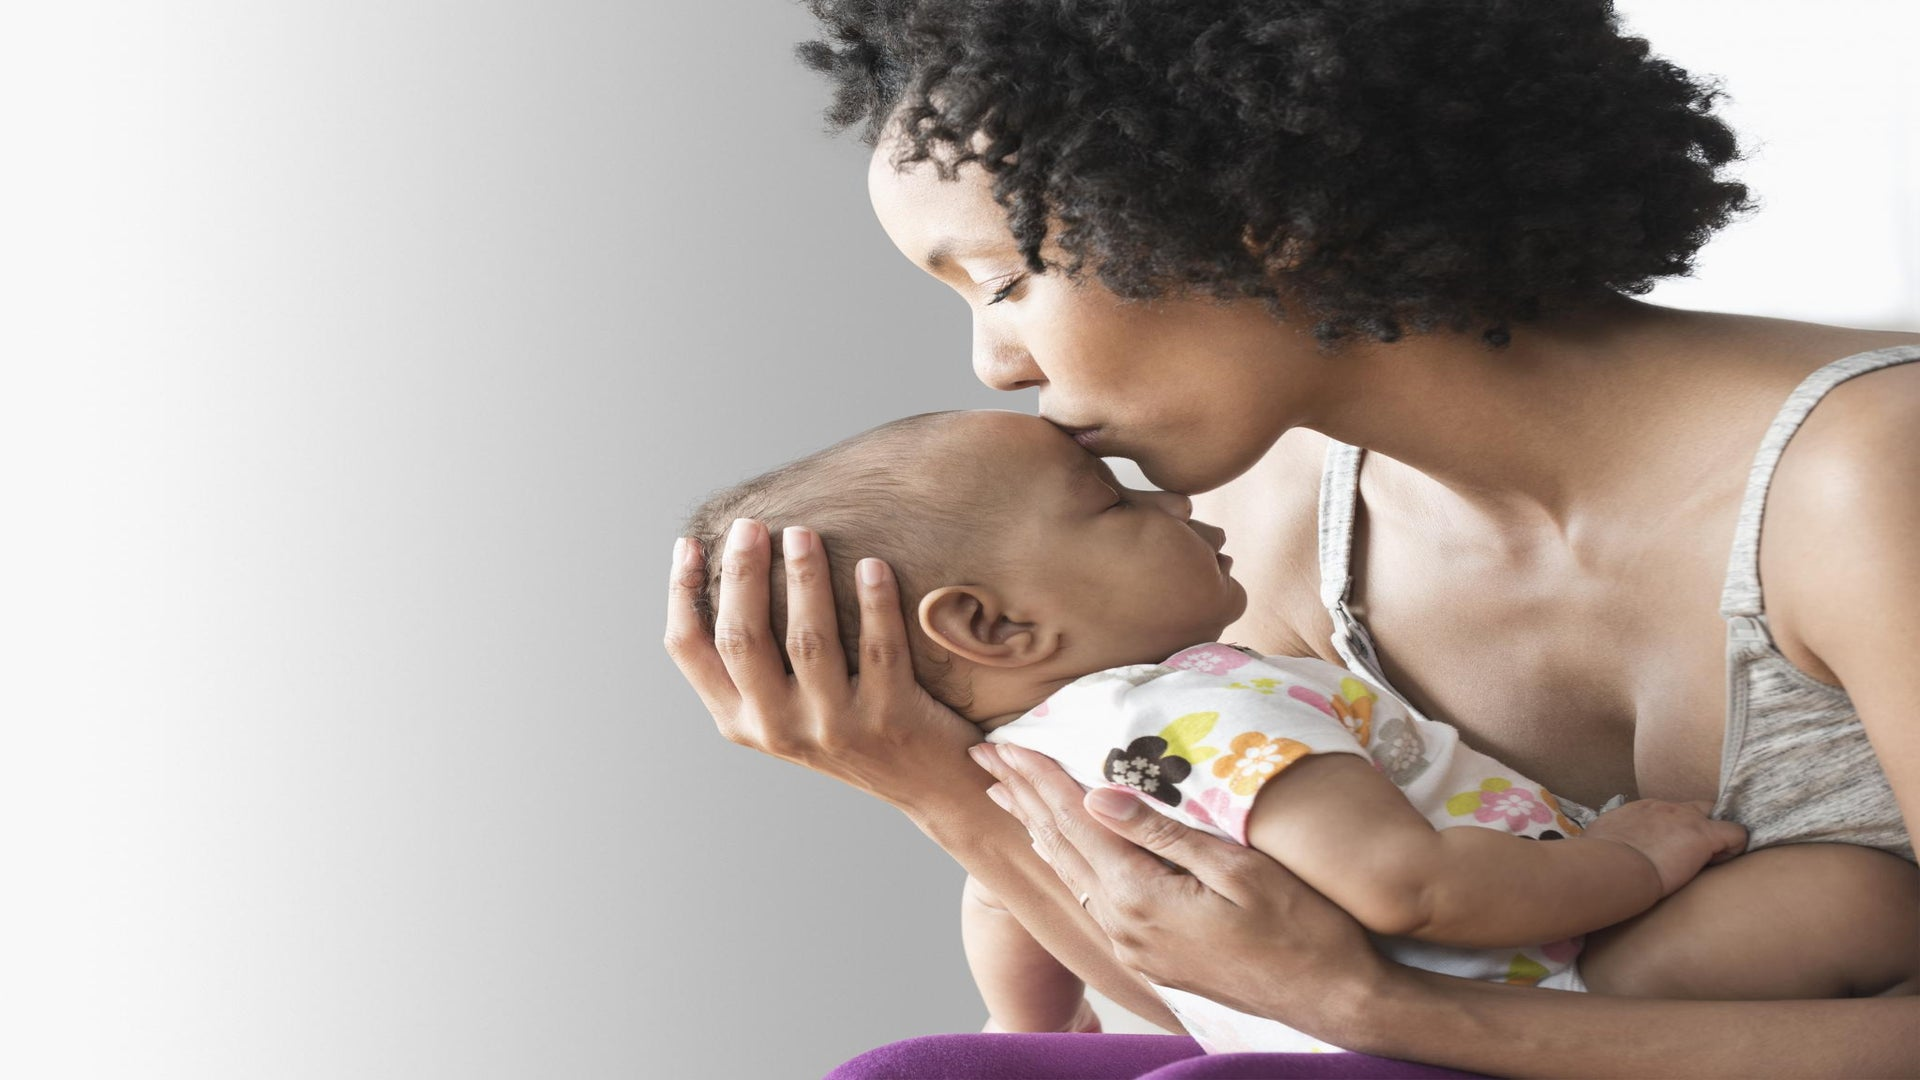 ESSENCE Poll: How Important Is Having a Child to You?